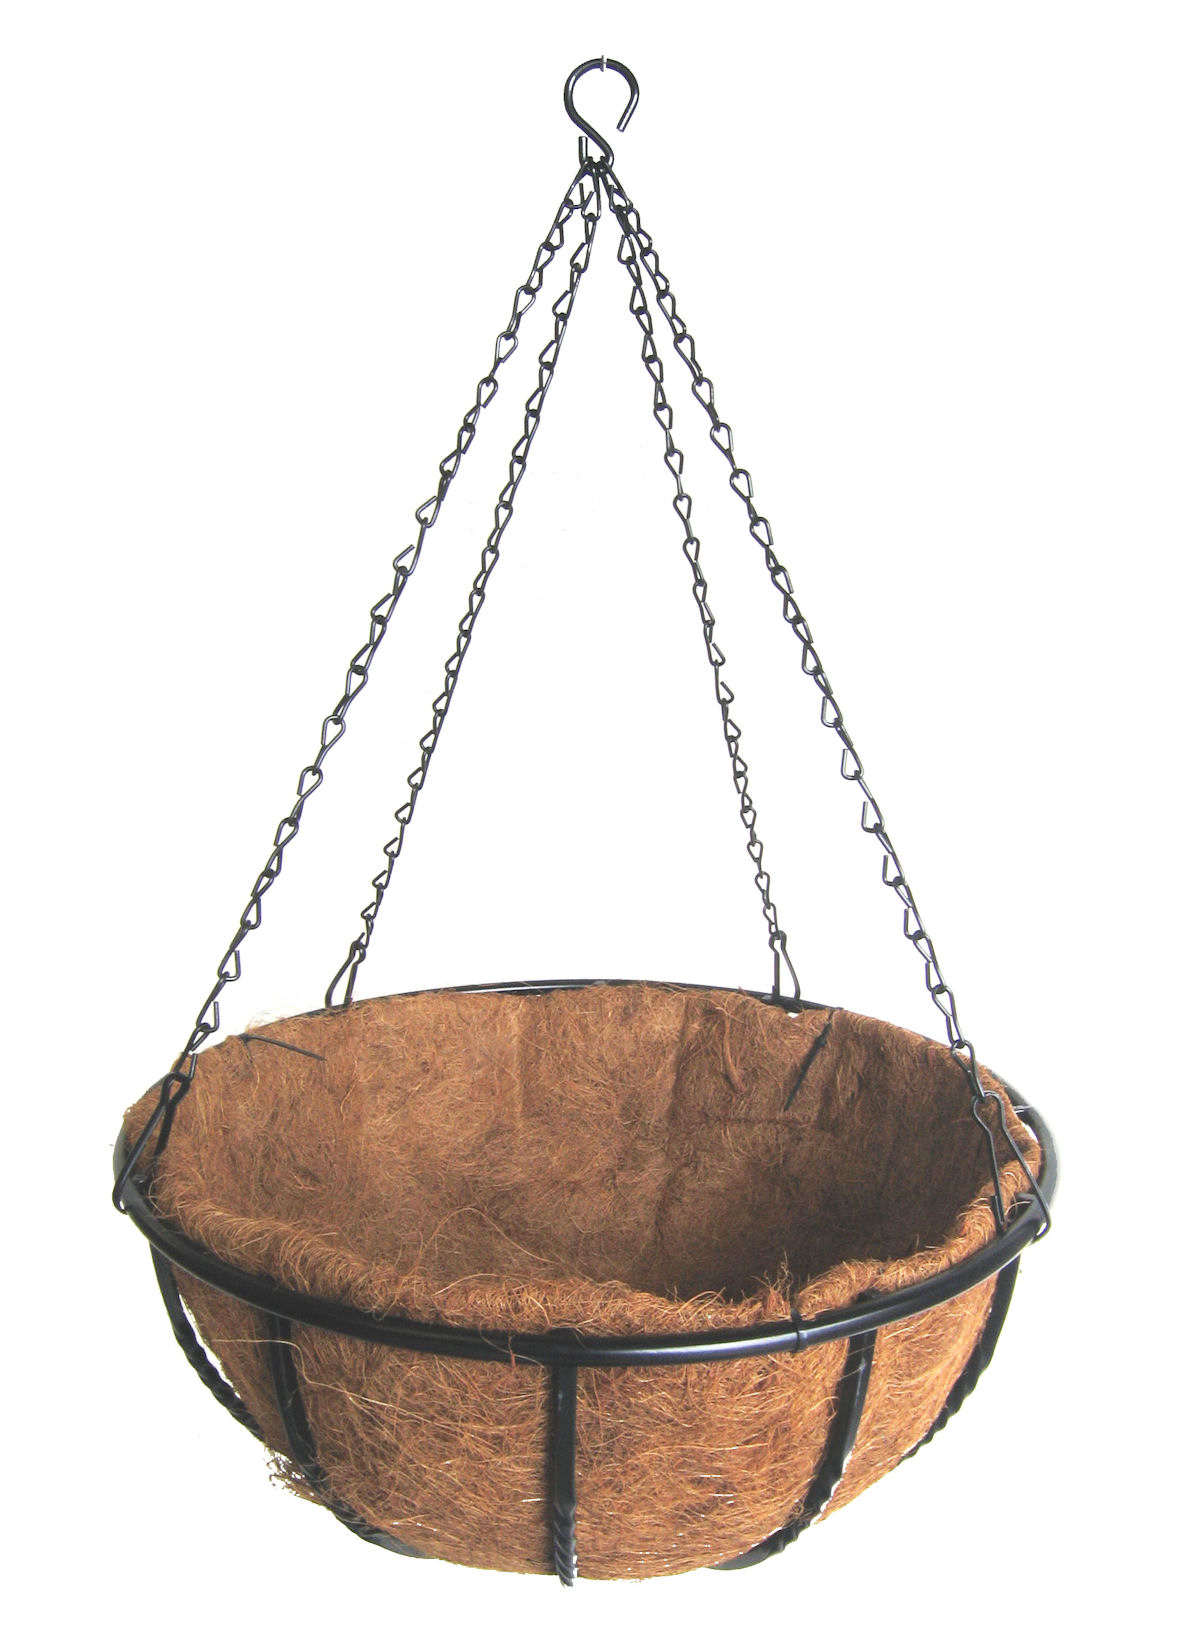 Forged Hanging Baskets Wall Troughs Wrought Iron Hanging